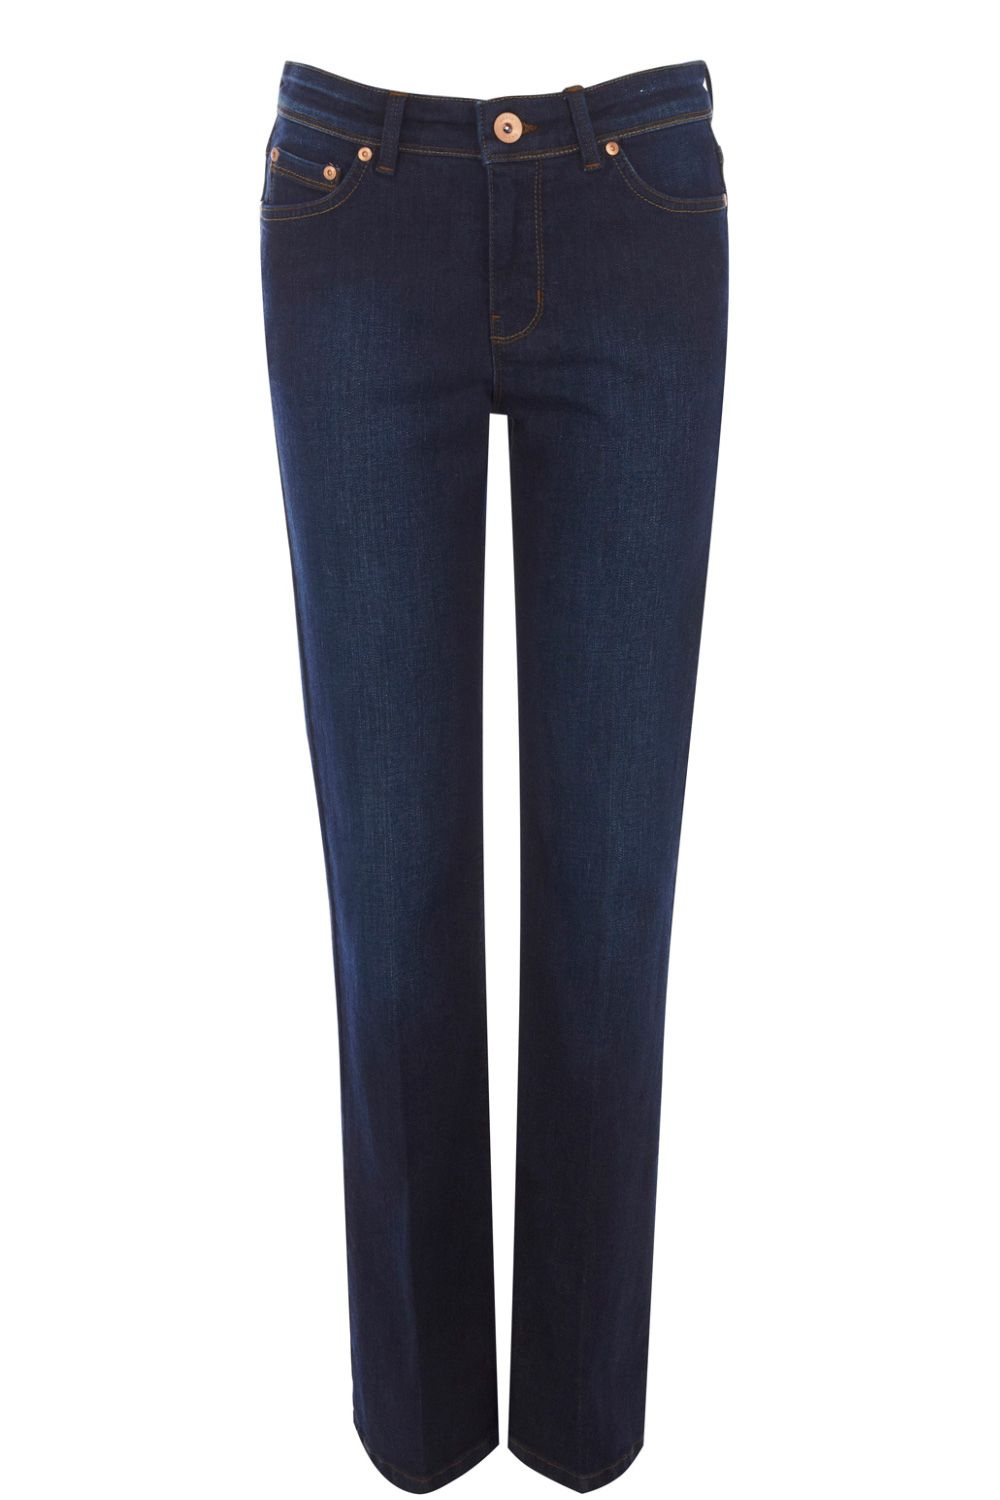 Regular rinse wash bootcut jeans